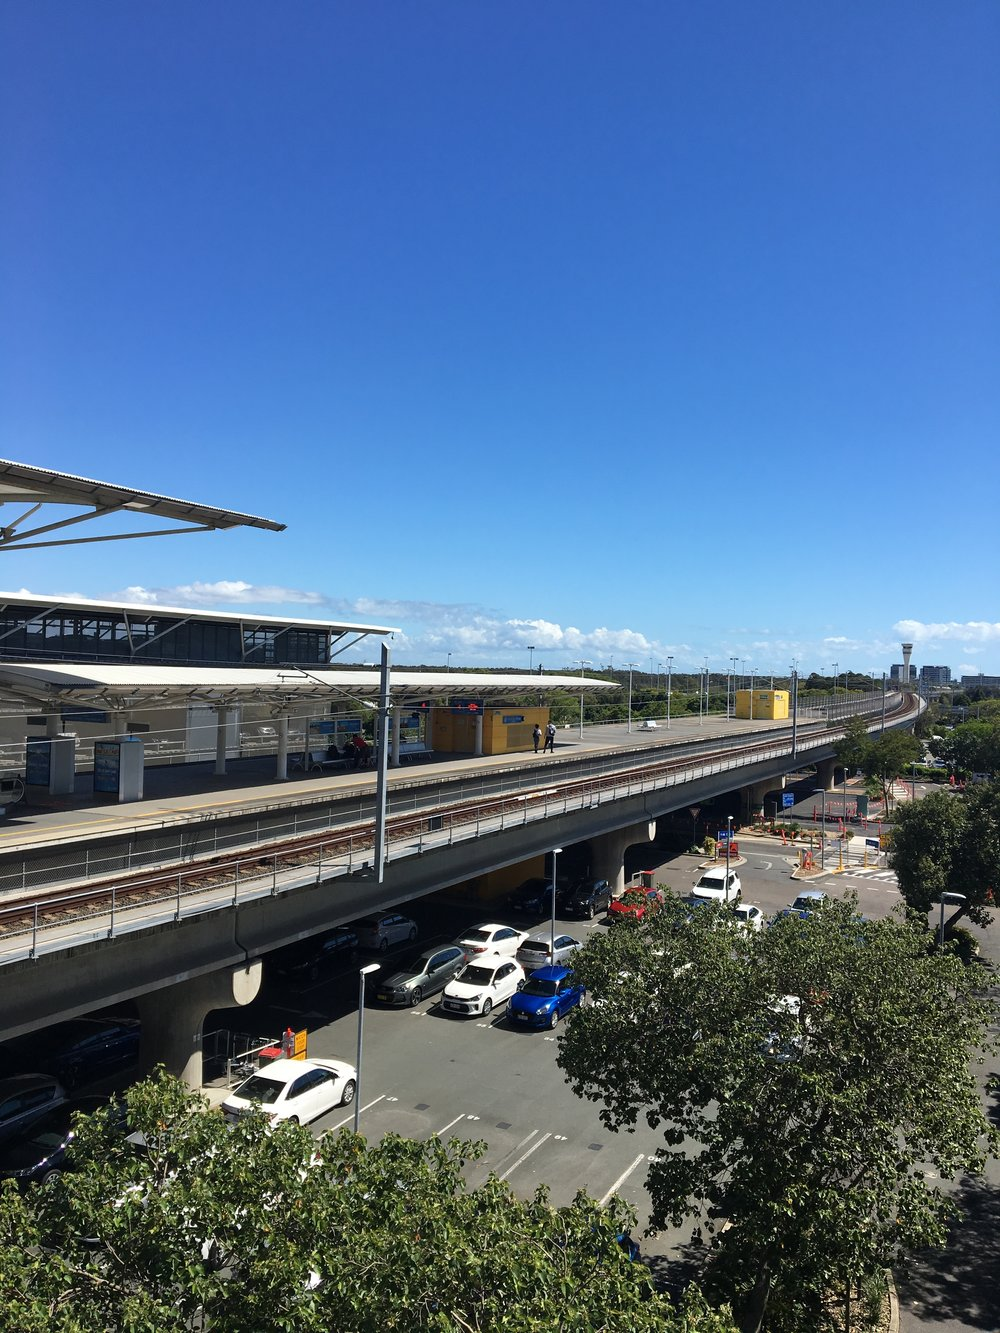 australia-brisbane-airport-train